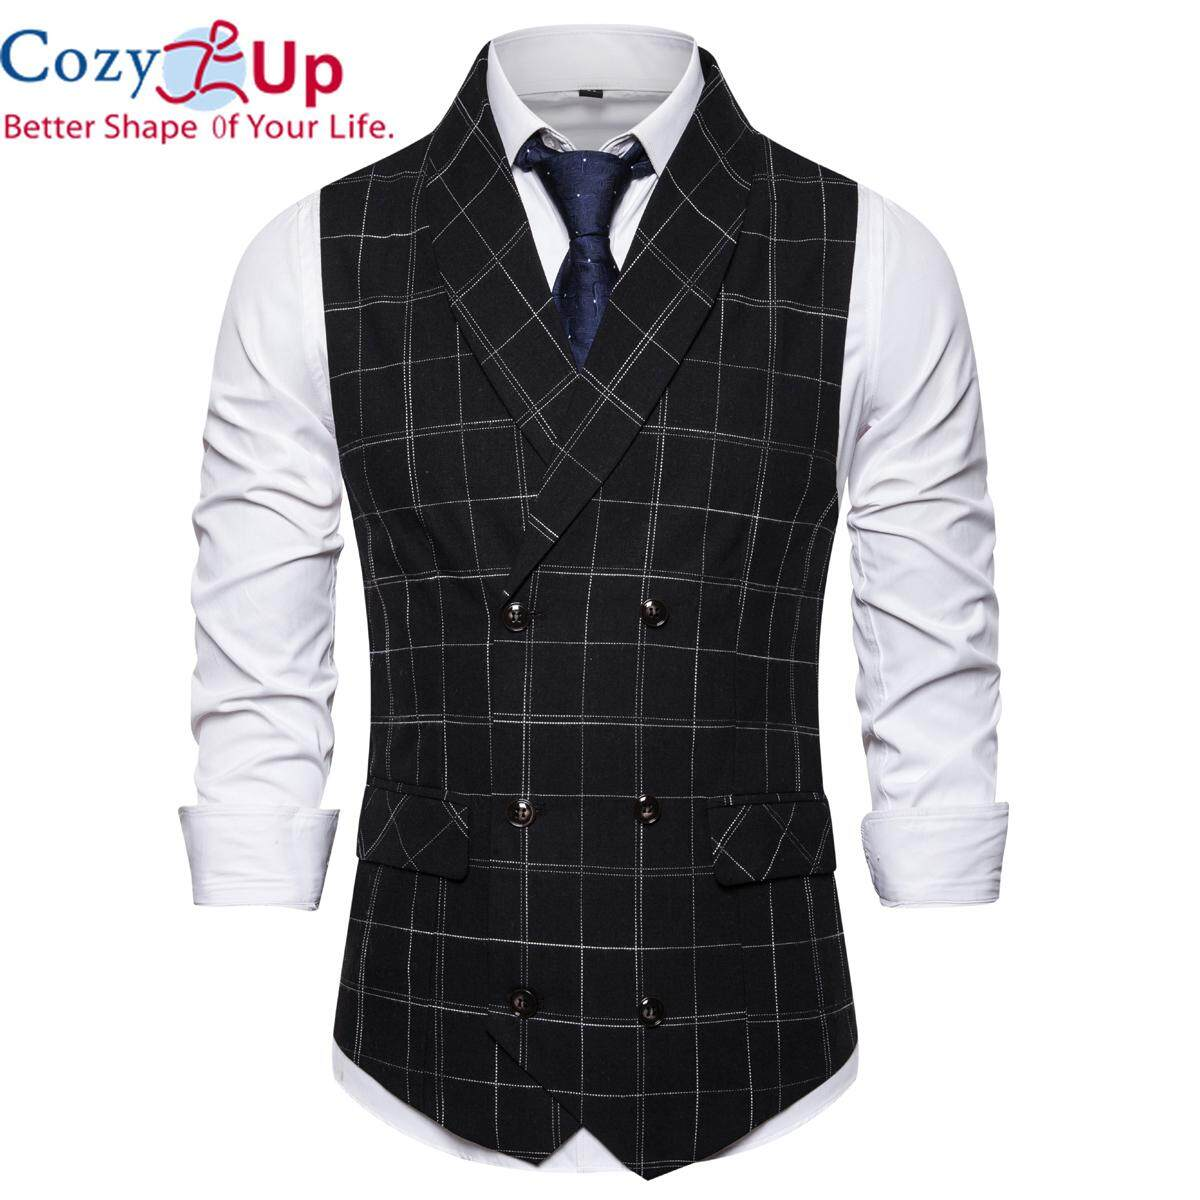 3a5d884e80414 Cozy Up Men Suit Vests Fashion Elegant Business Slim Fit Check Vest Double  Breasted Waistcoat Casual Sleeveless Jacket Gilet